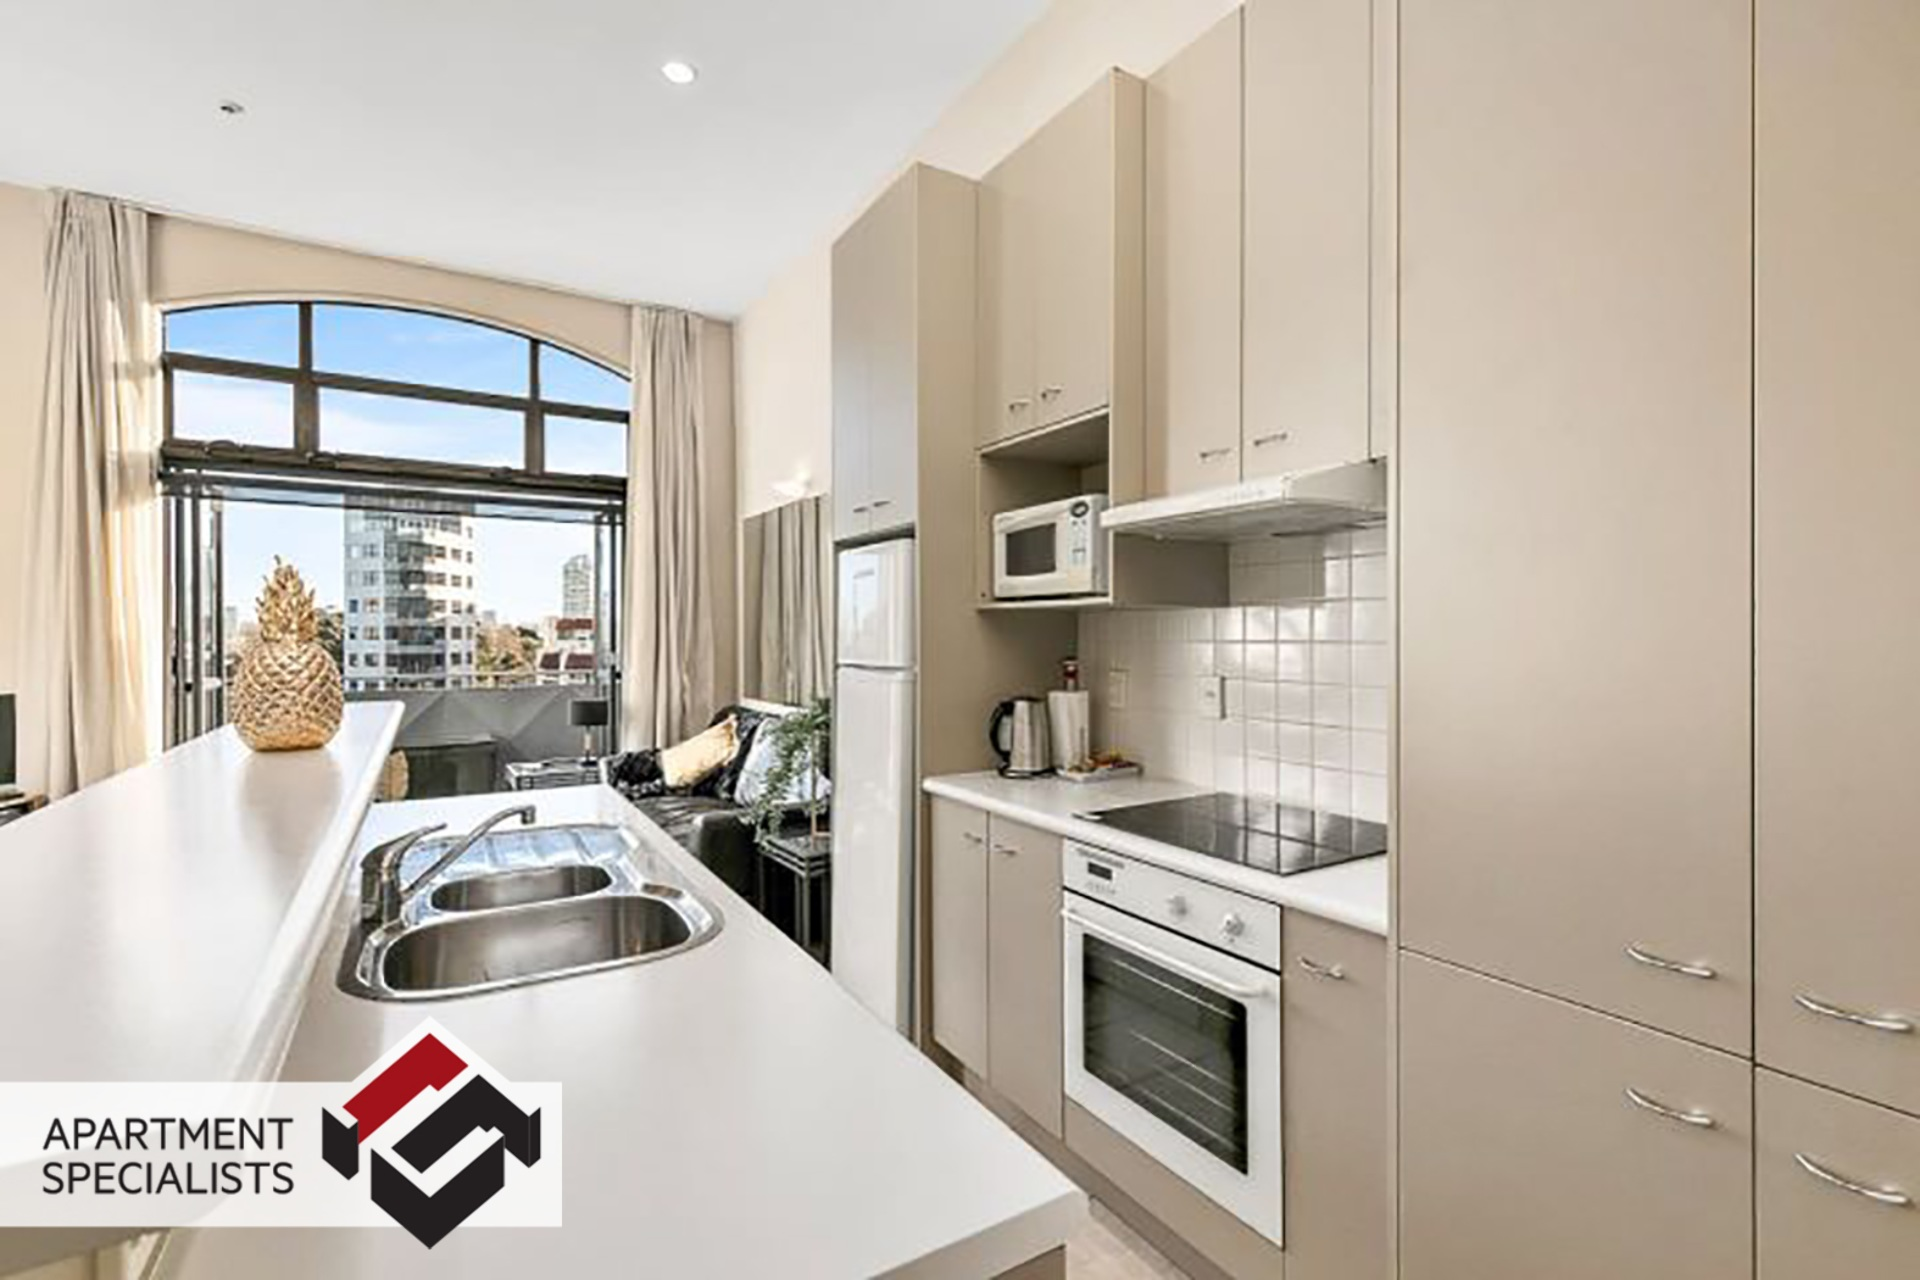 9 | 50 Eden Crescent, City Centre | Apartment Specialists